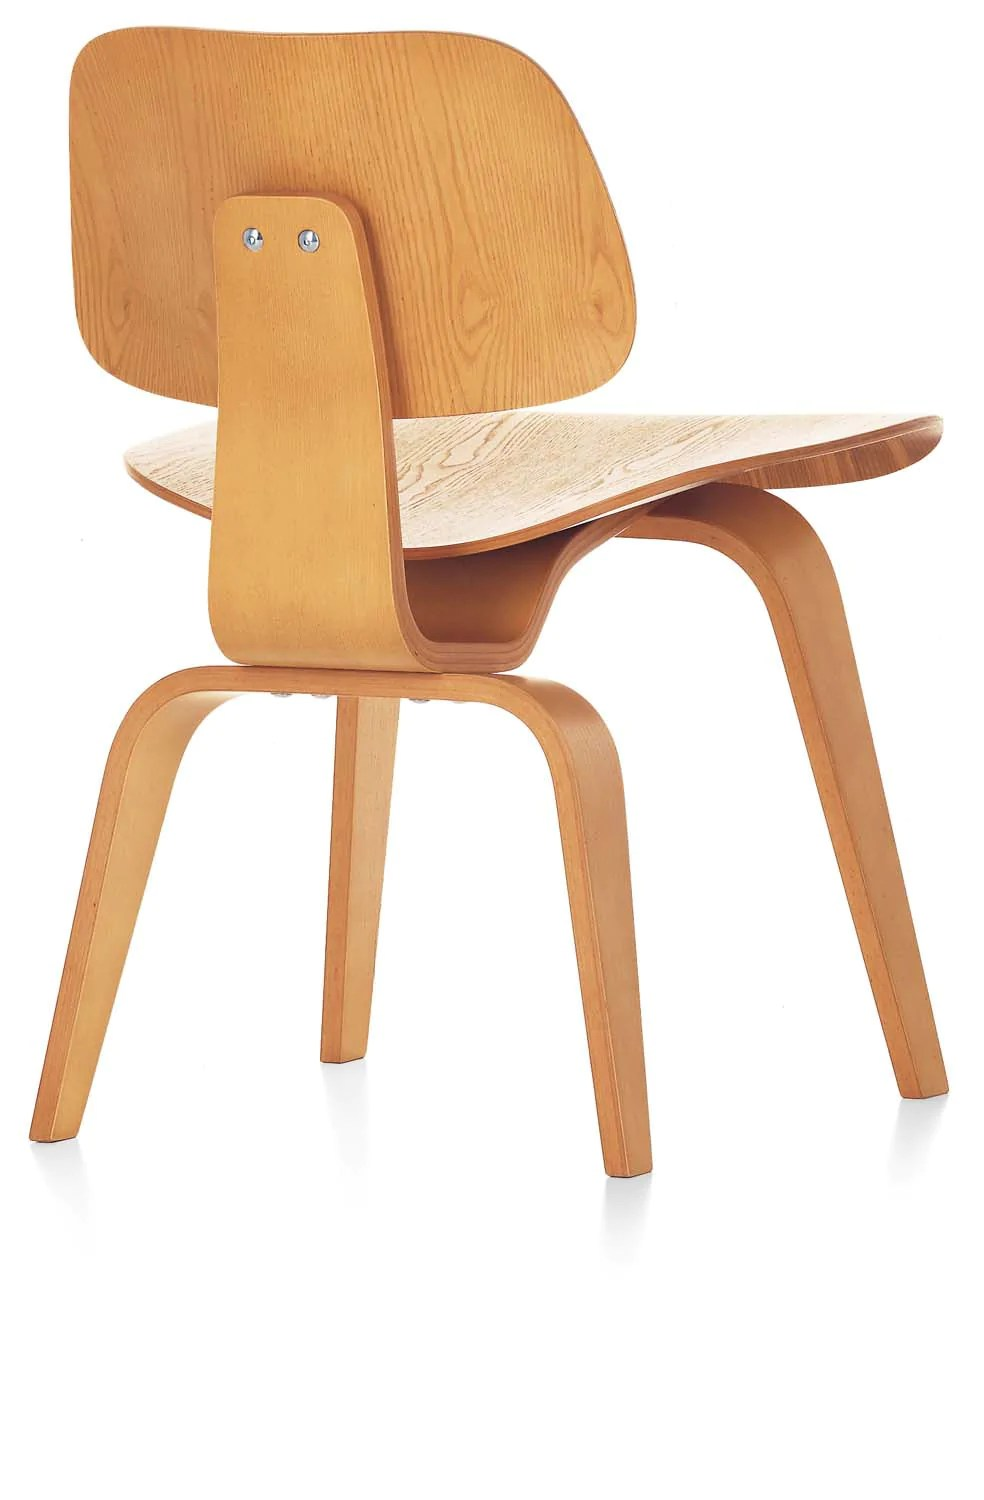 Eames Plywood Chair Eames Plywood Chair Dcw